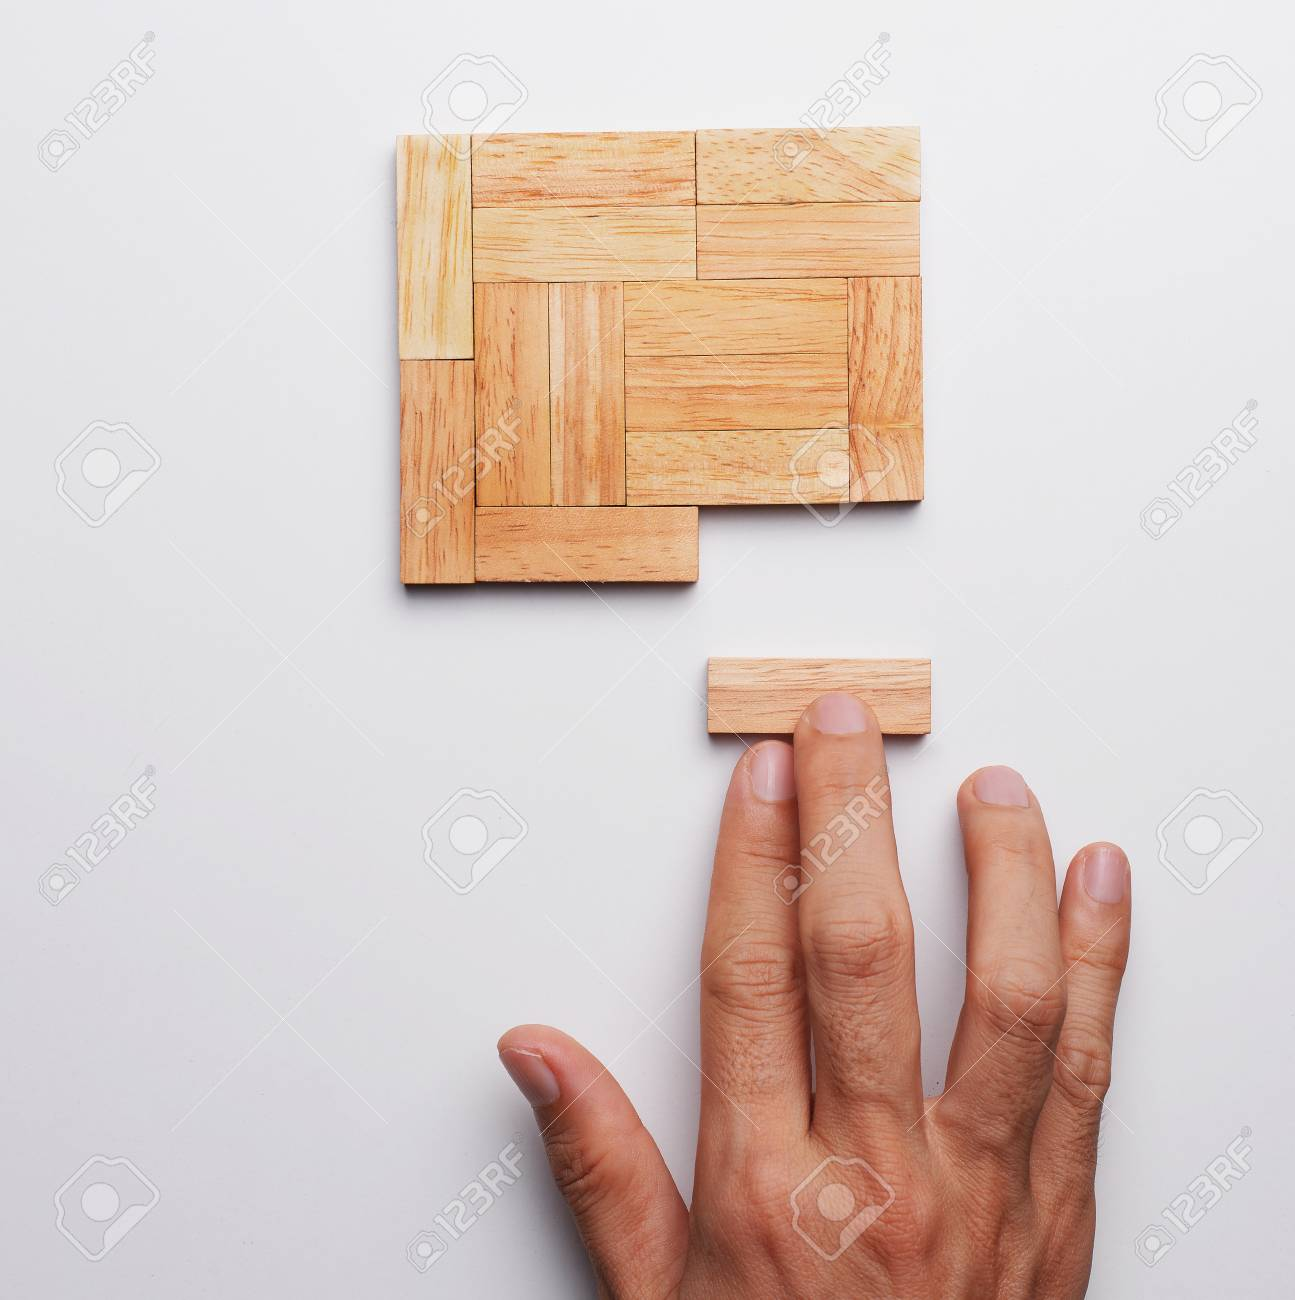 Man hand push last piece of wood block to complete the unity,